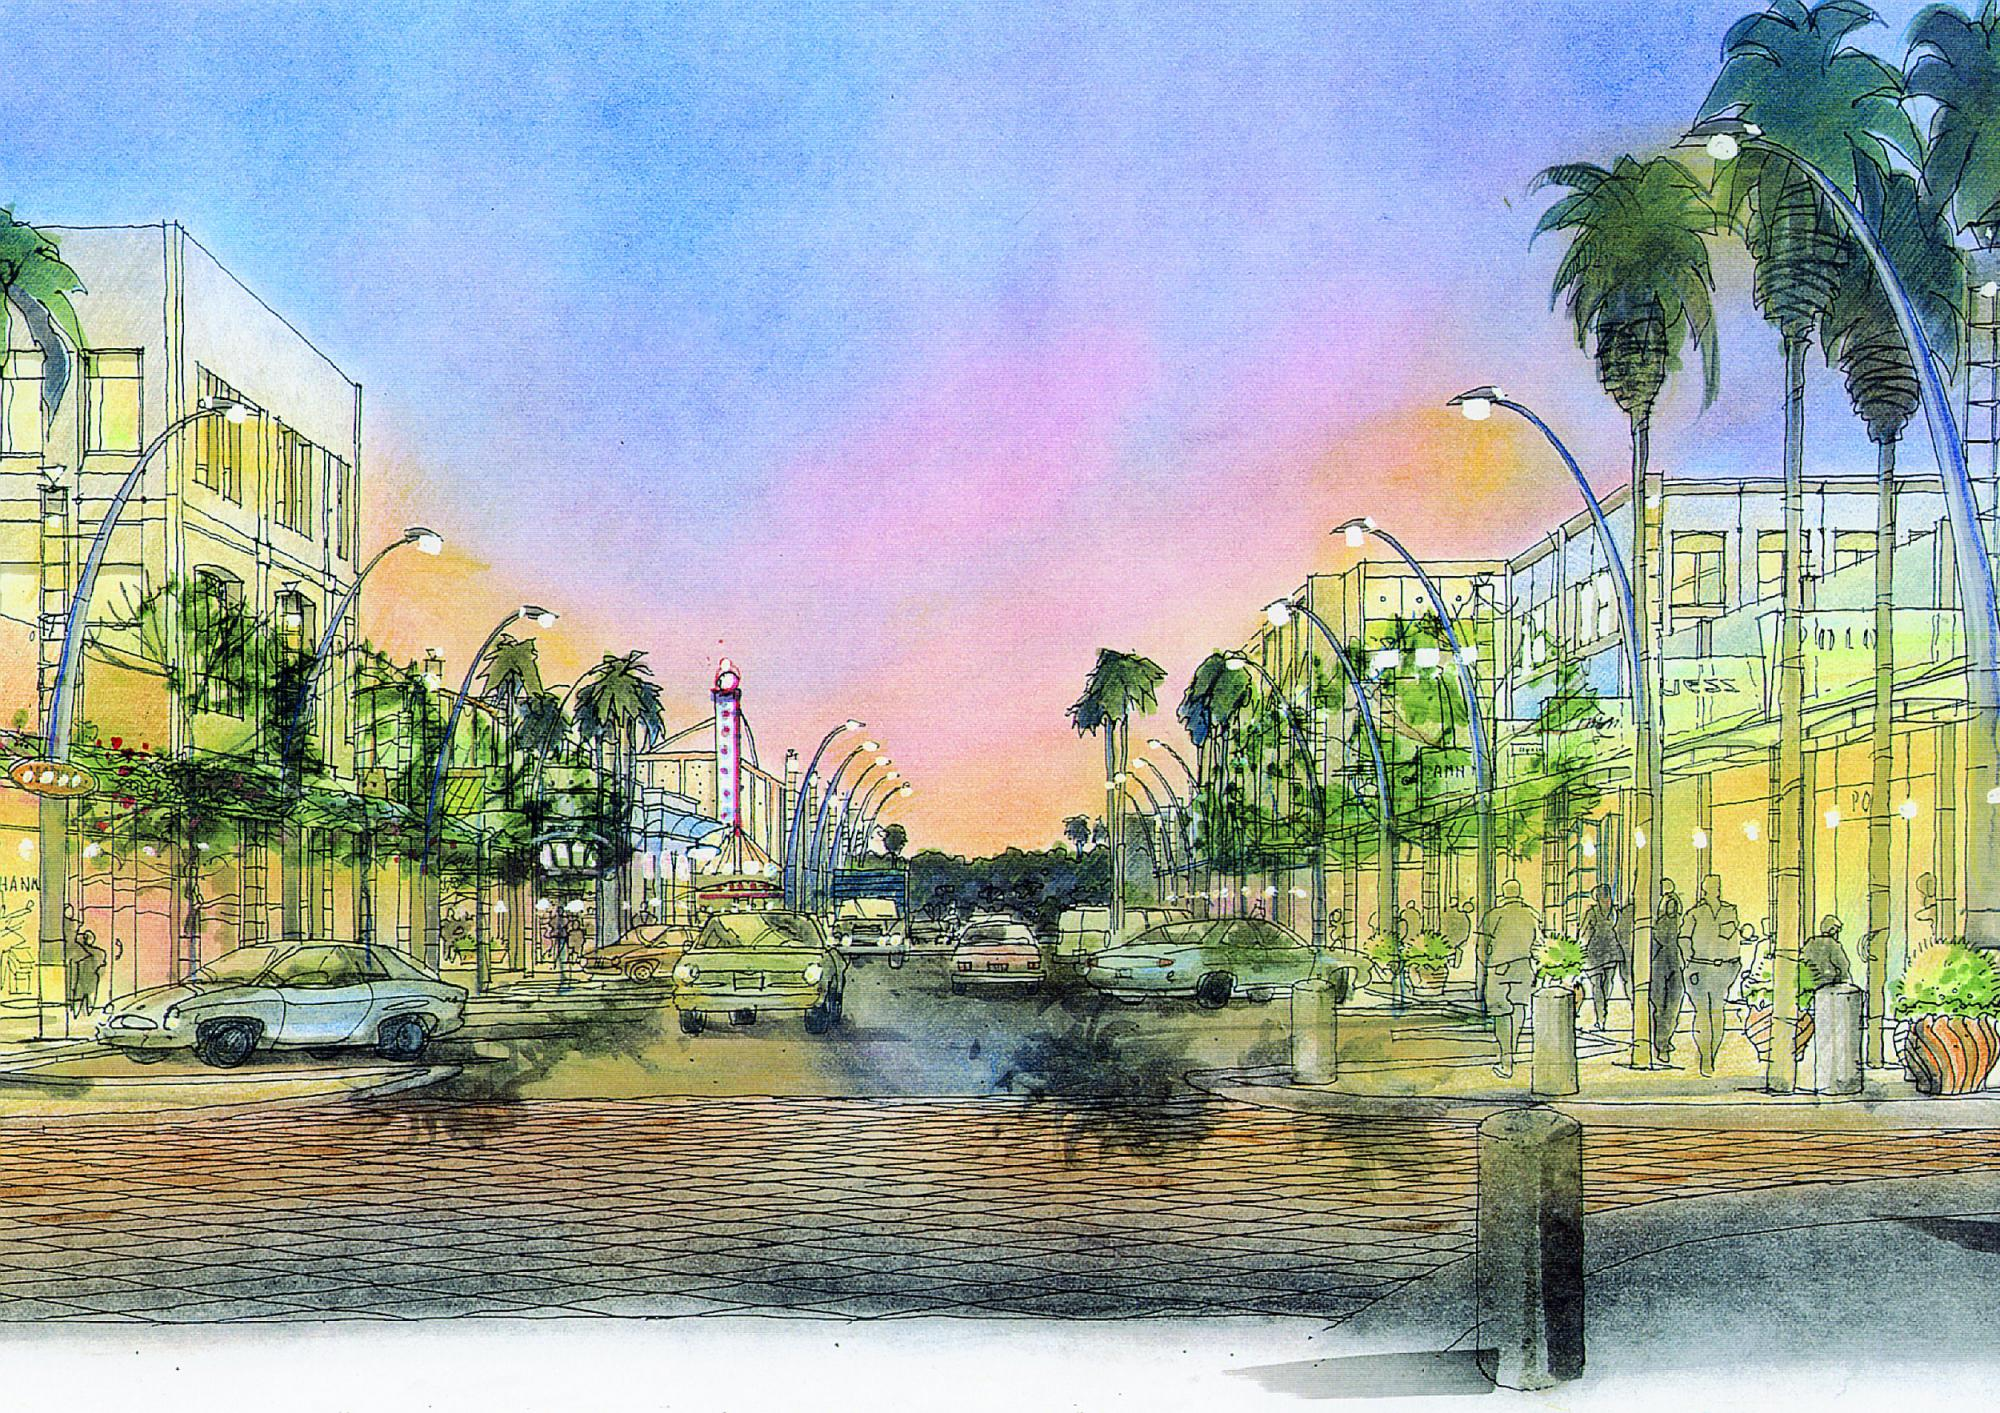 Kierland Commons Main Street Rendering